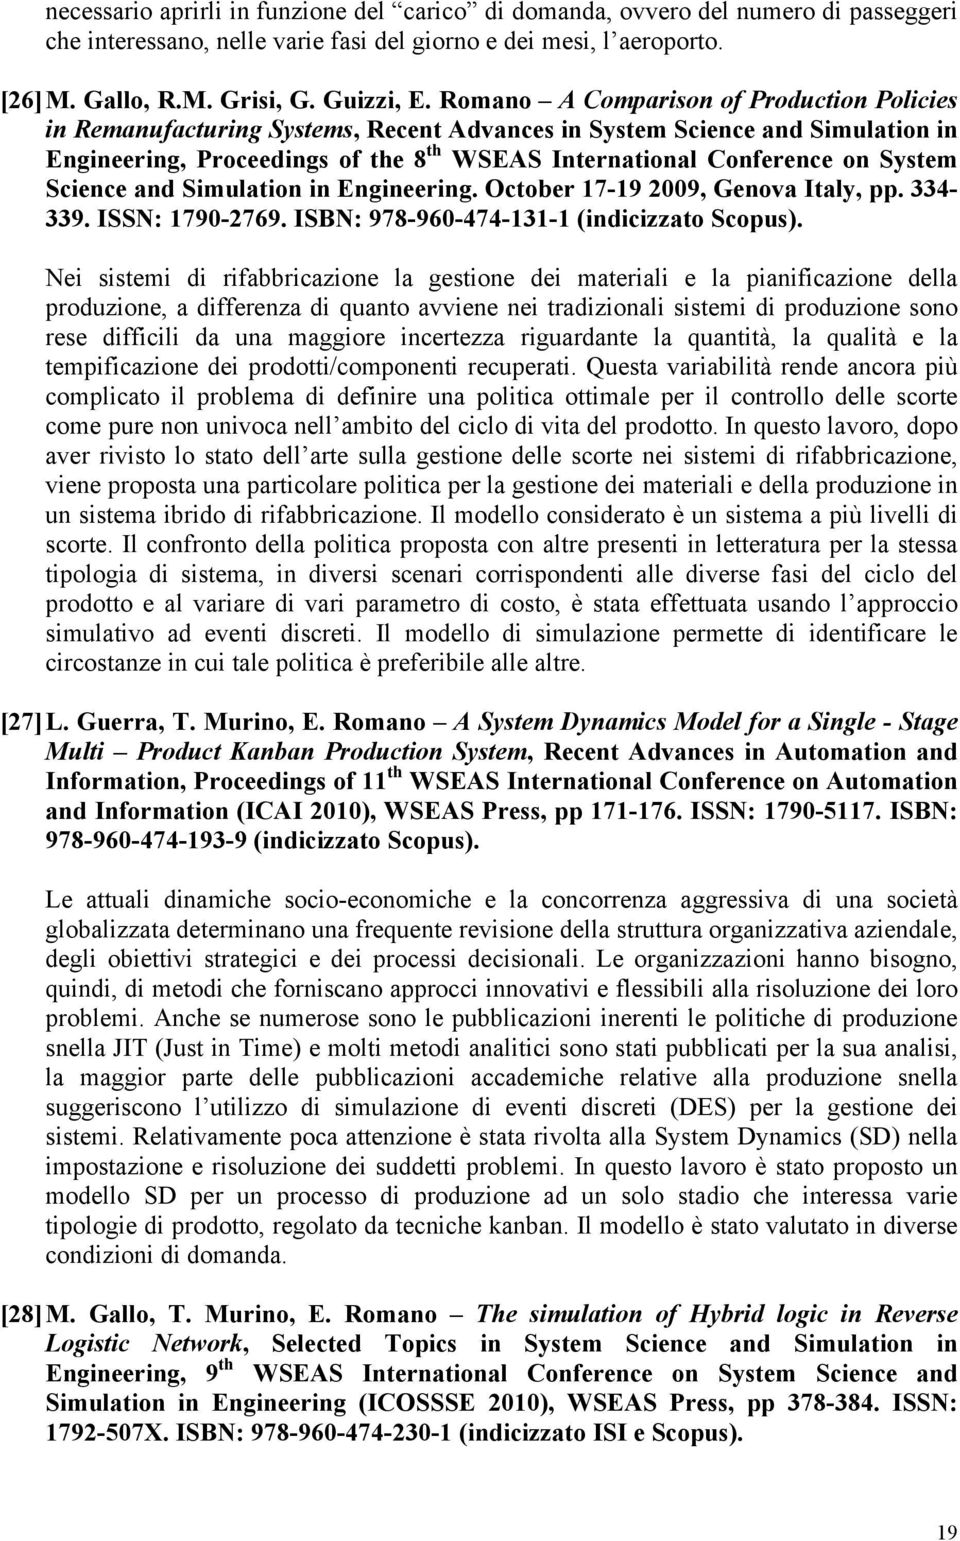 System Science and Simulation in Engineering. October 17-19 2009, Genova Italy, pp. 334-339. ISSN: 1790-2769. ISBN: 978-960-474-131-1 (indicizzato Scopus).